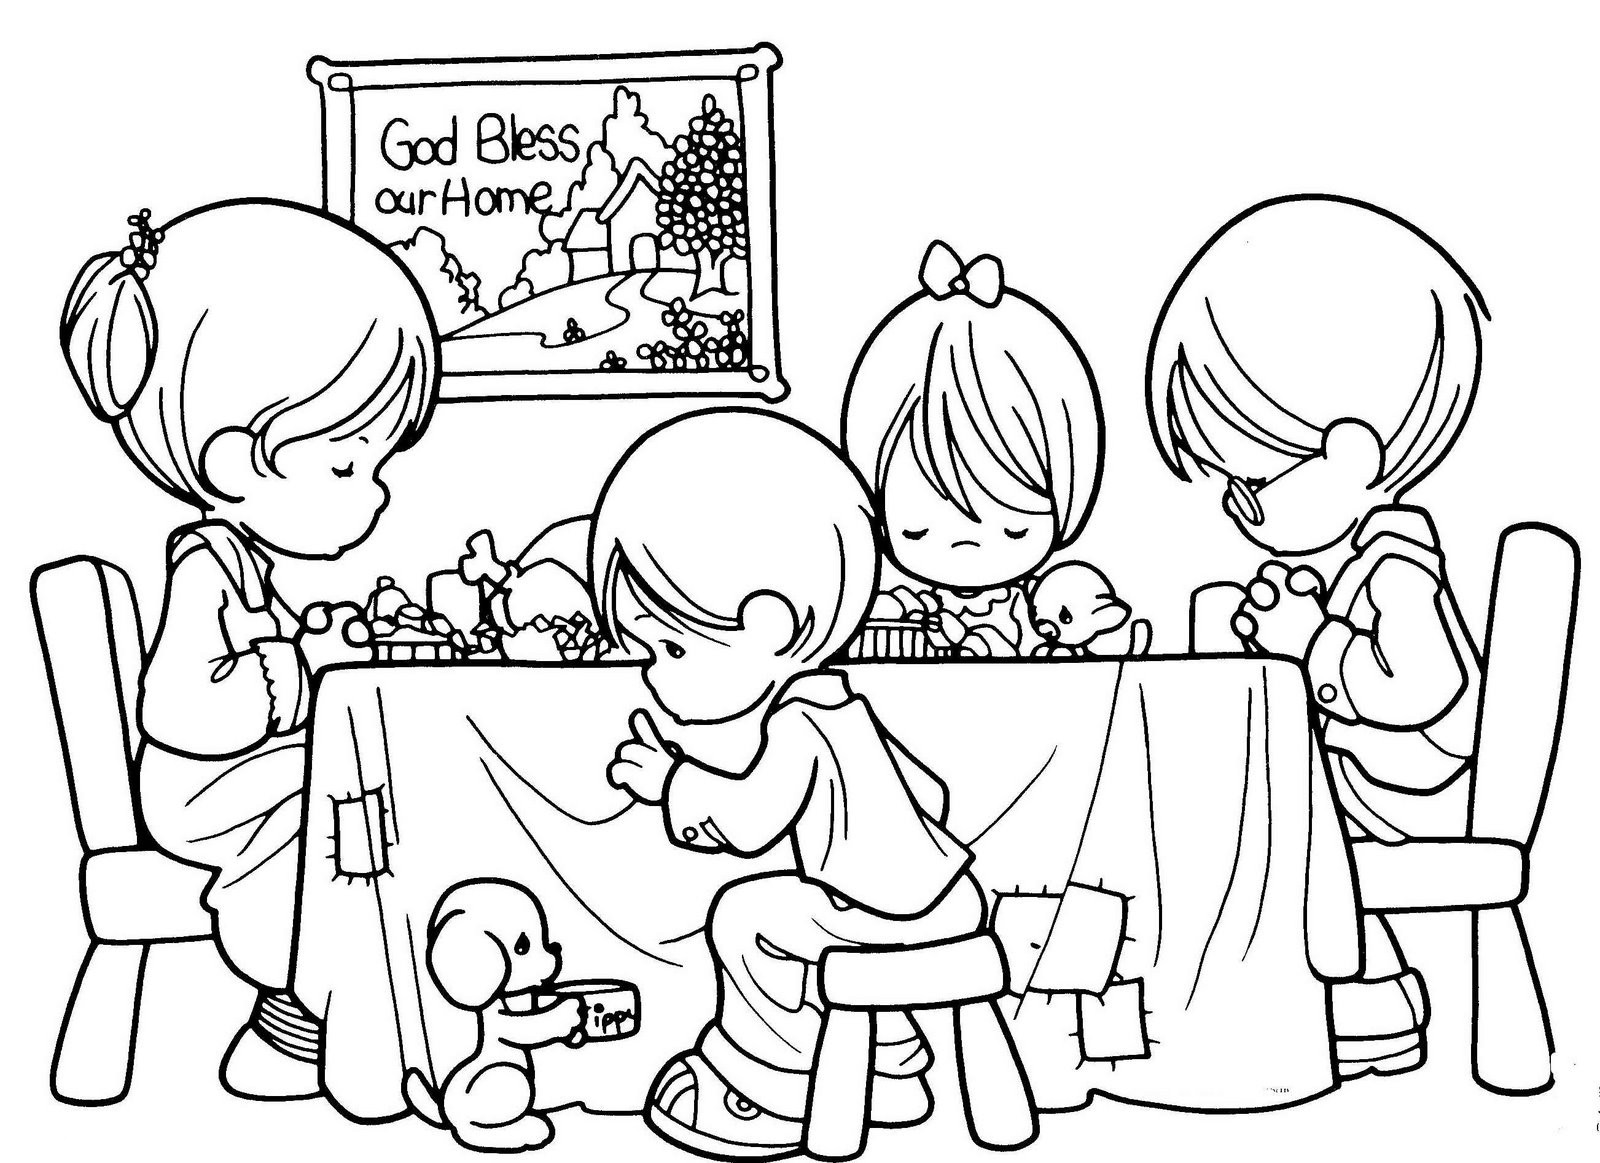 Kids Coloring Picture  Free Printable Christian Coloring Pages for Kids Best